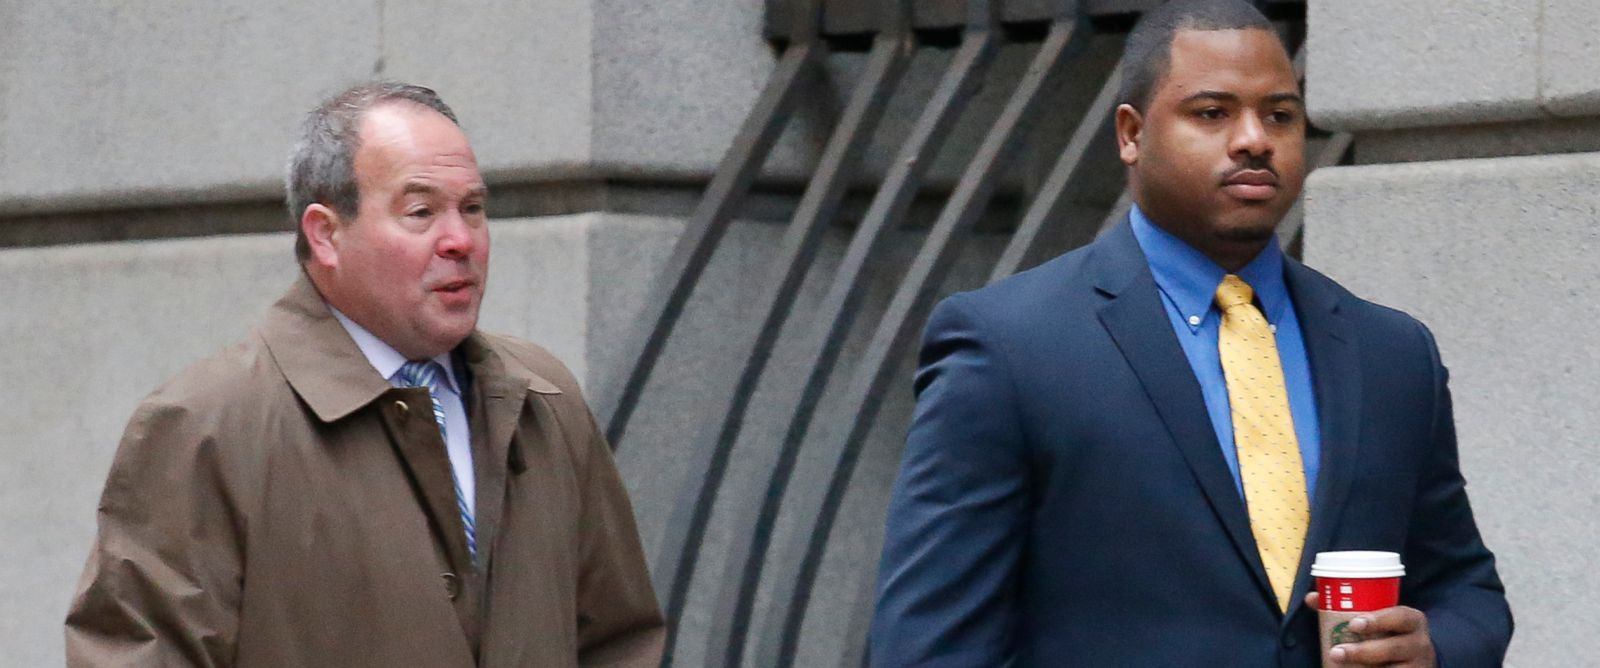 PHOTO:William Porter, right, one of six Baltimore city police officers charged in connection to the death of Freddie Gray, walks into a courthouse with his attorney Joseph Murtha for jury selection in his trial, Nov. 30, 2015, in Baltimore.